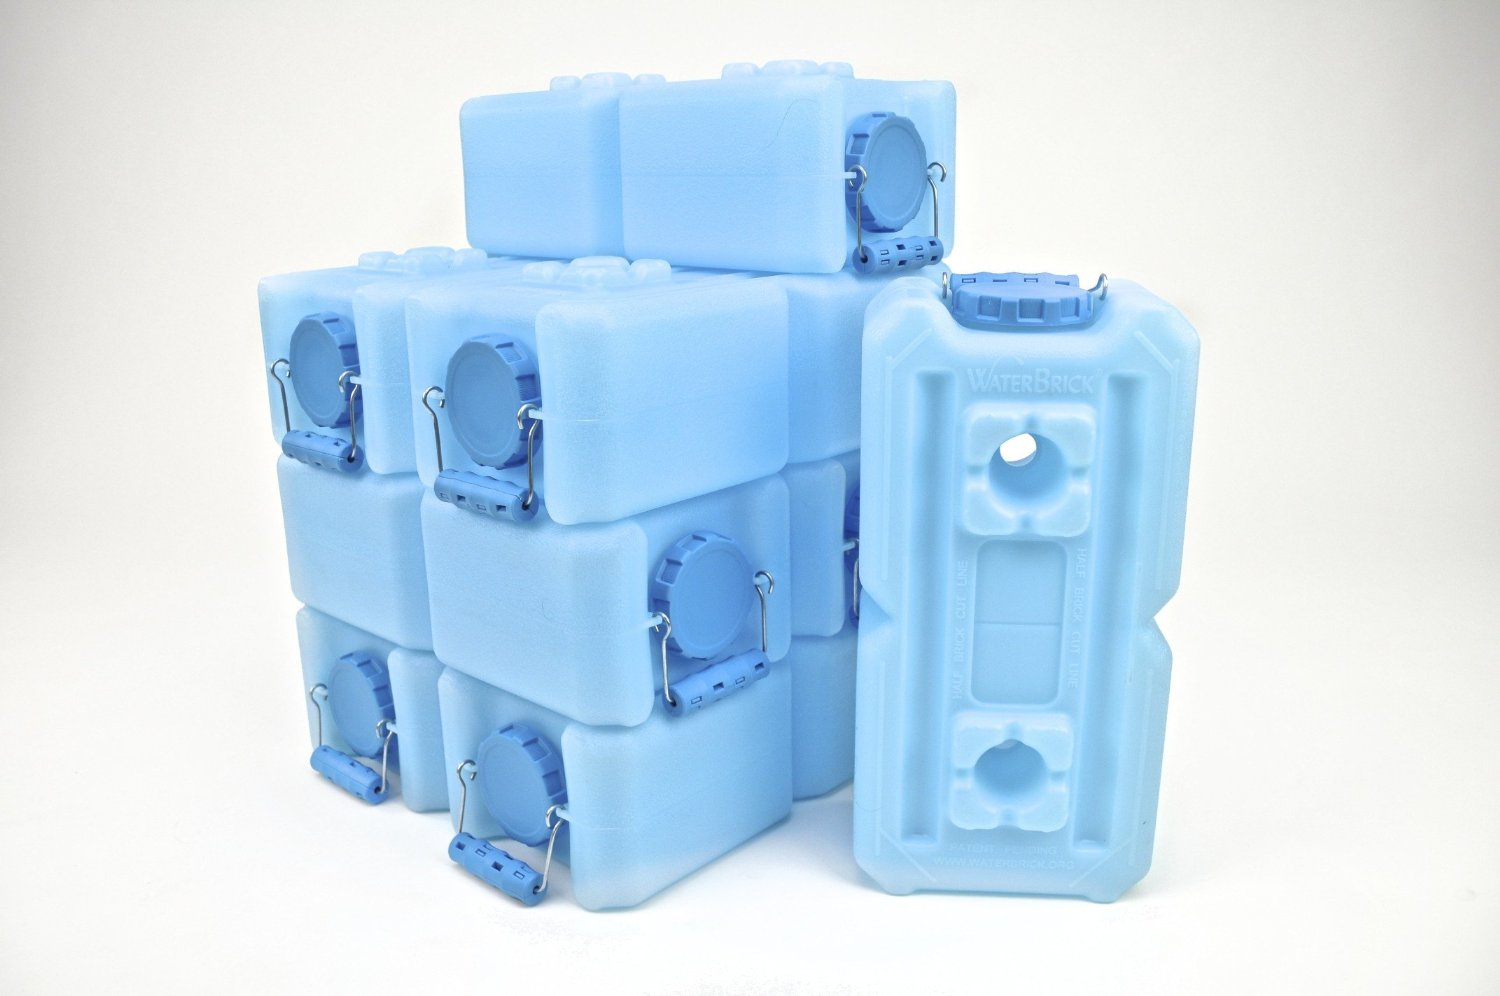 Types Of Water Storage Containers Survival ... & Survival Water Storage Containers - Listitdallas